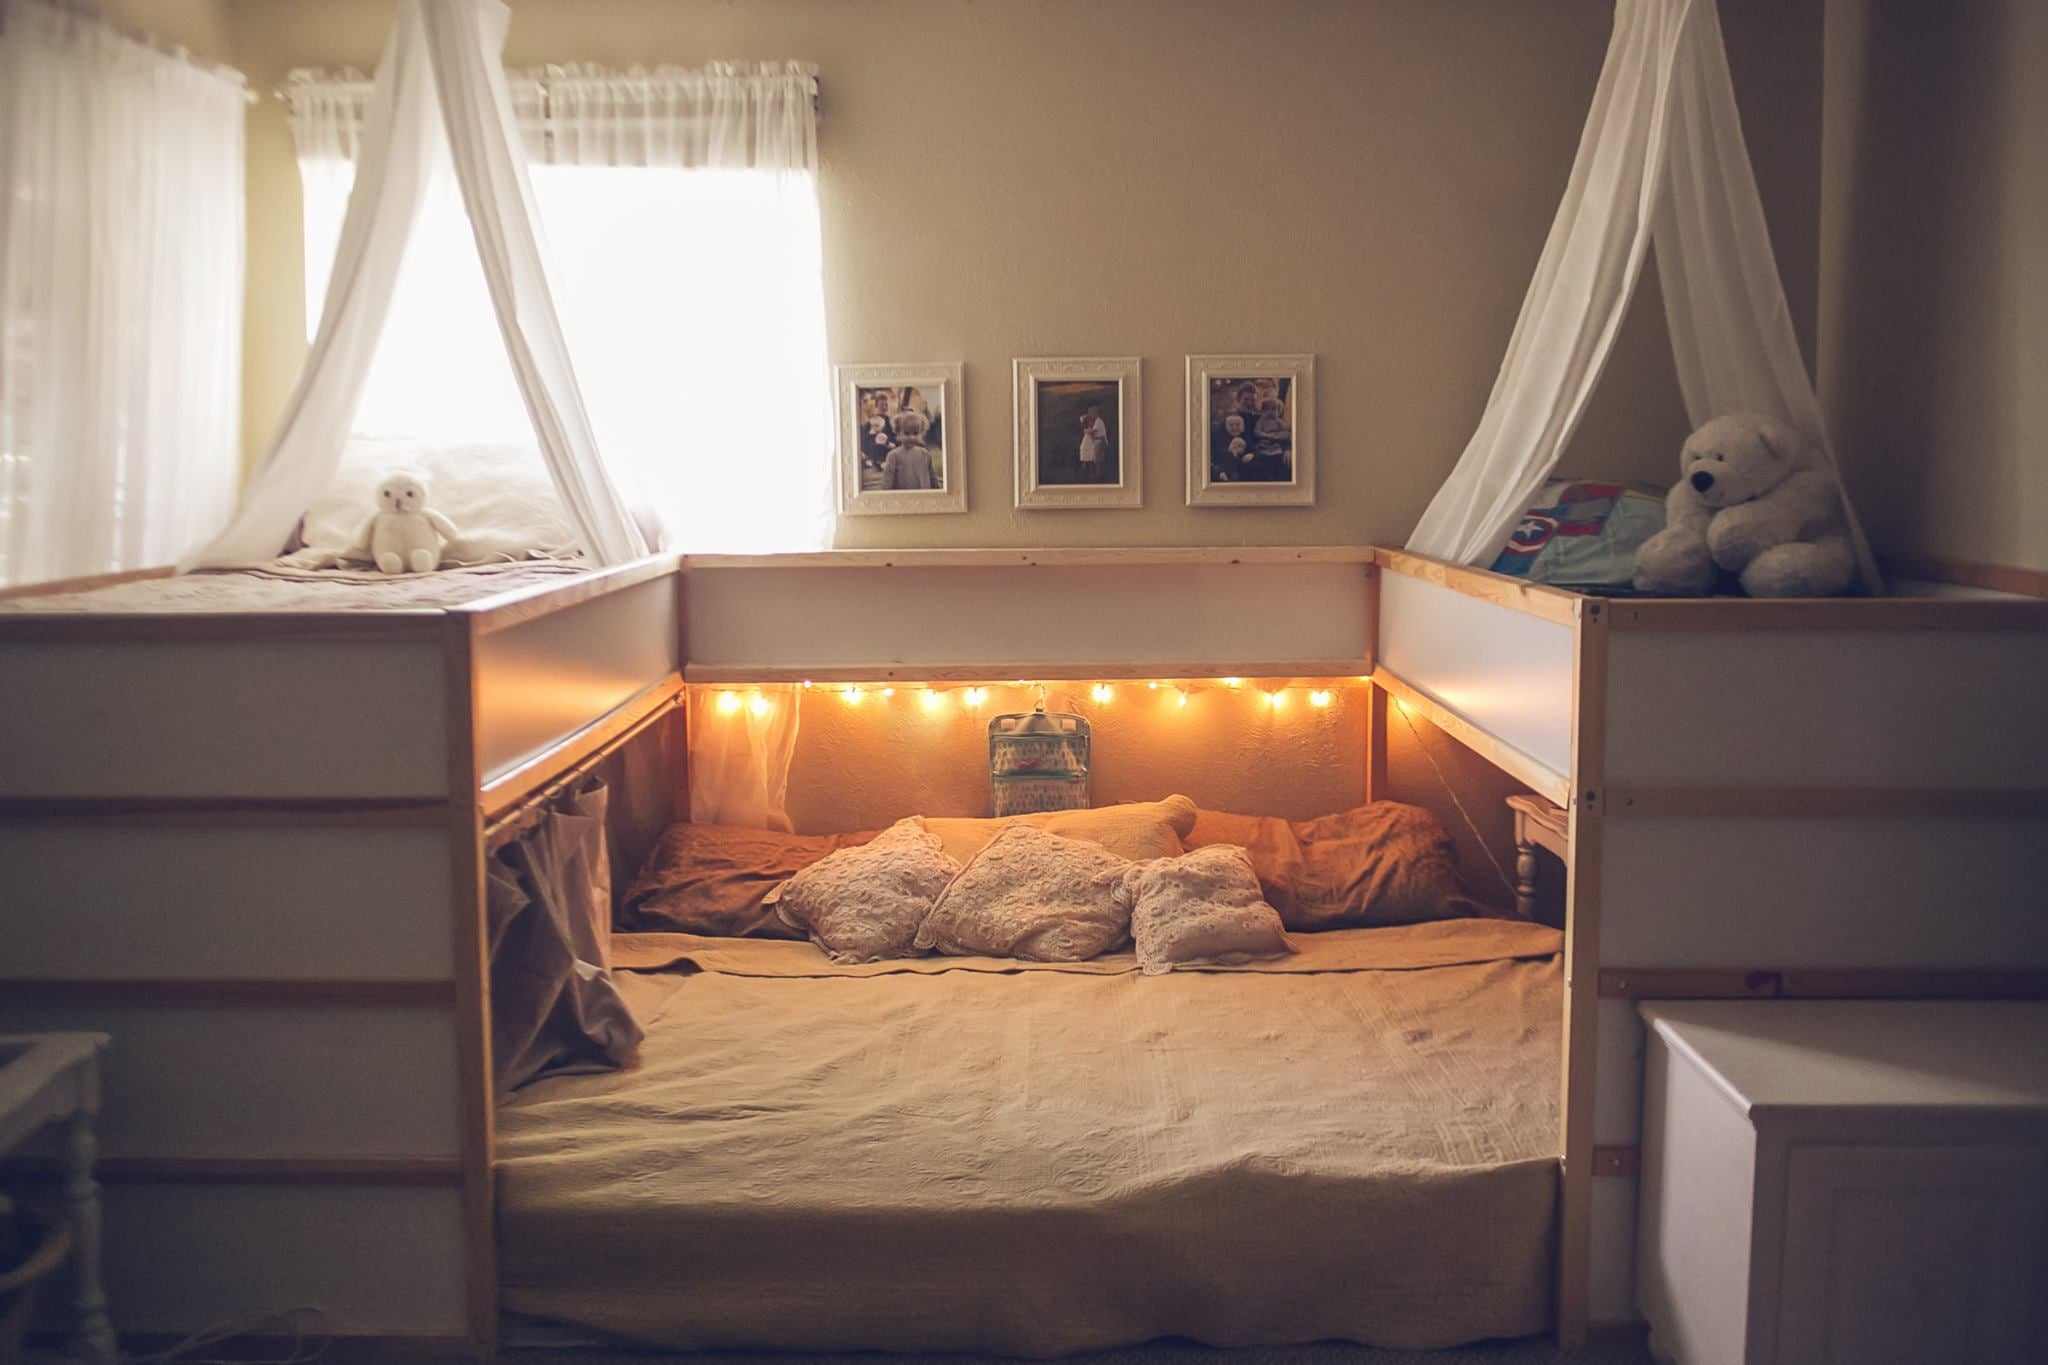 Ikea Bed Hack For Families Who Cosleep Popsugar Family